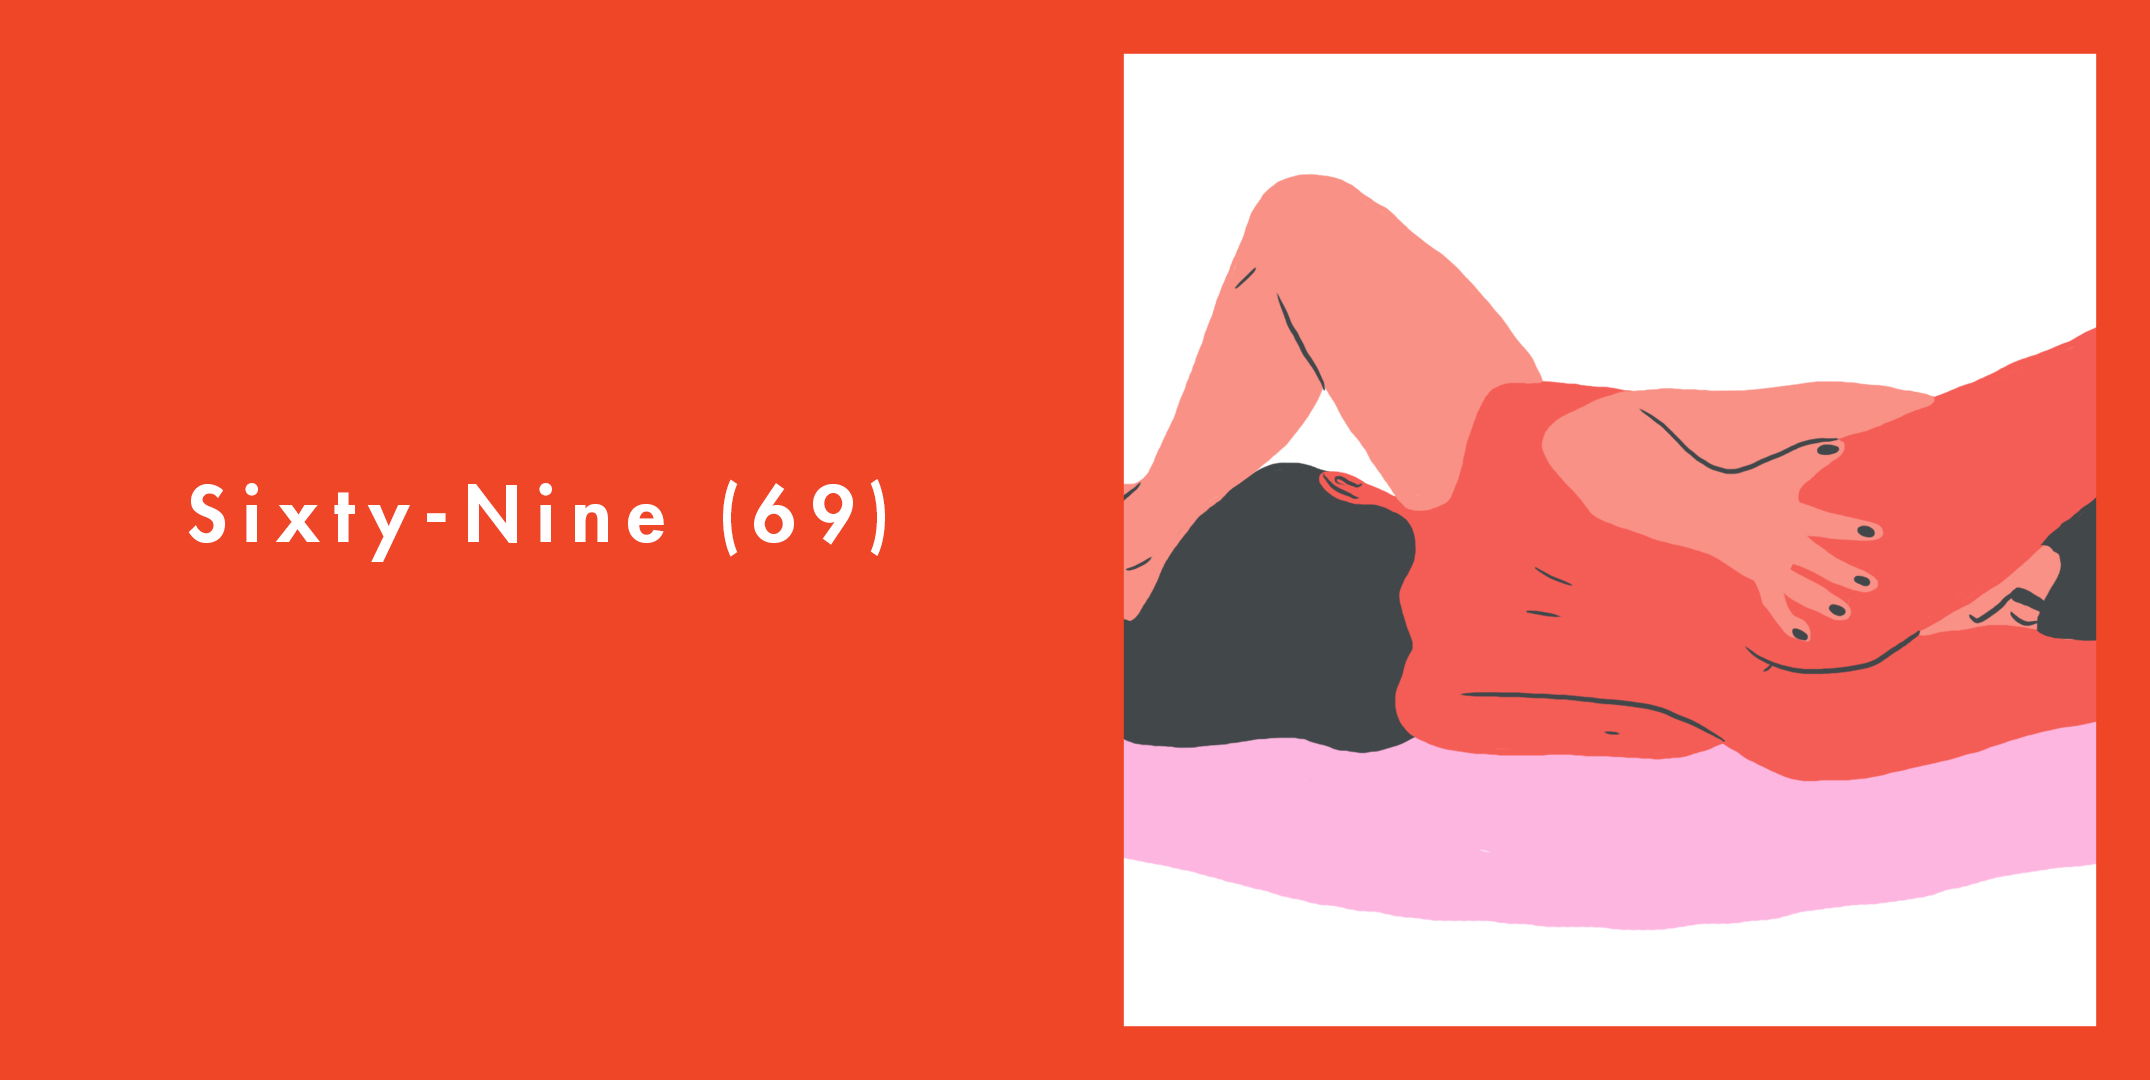 69 Sexo what is the 69 sex position - 69ing definition and tips